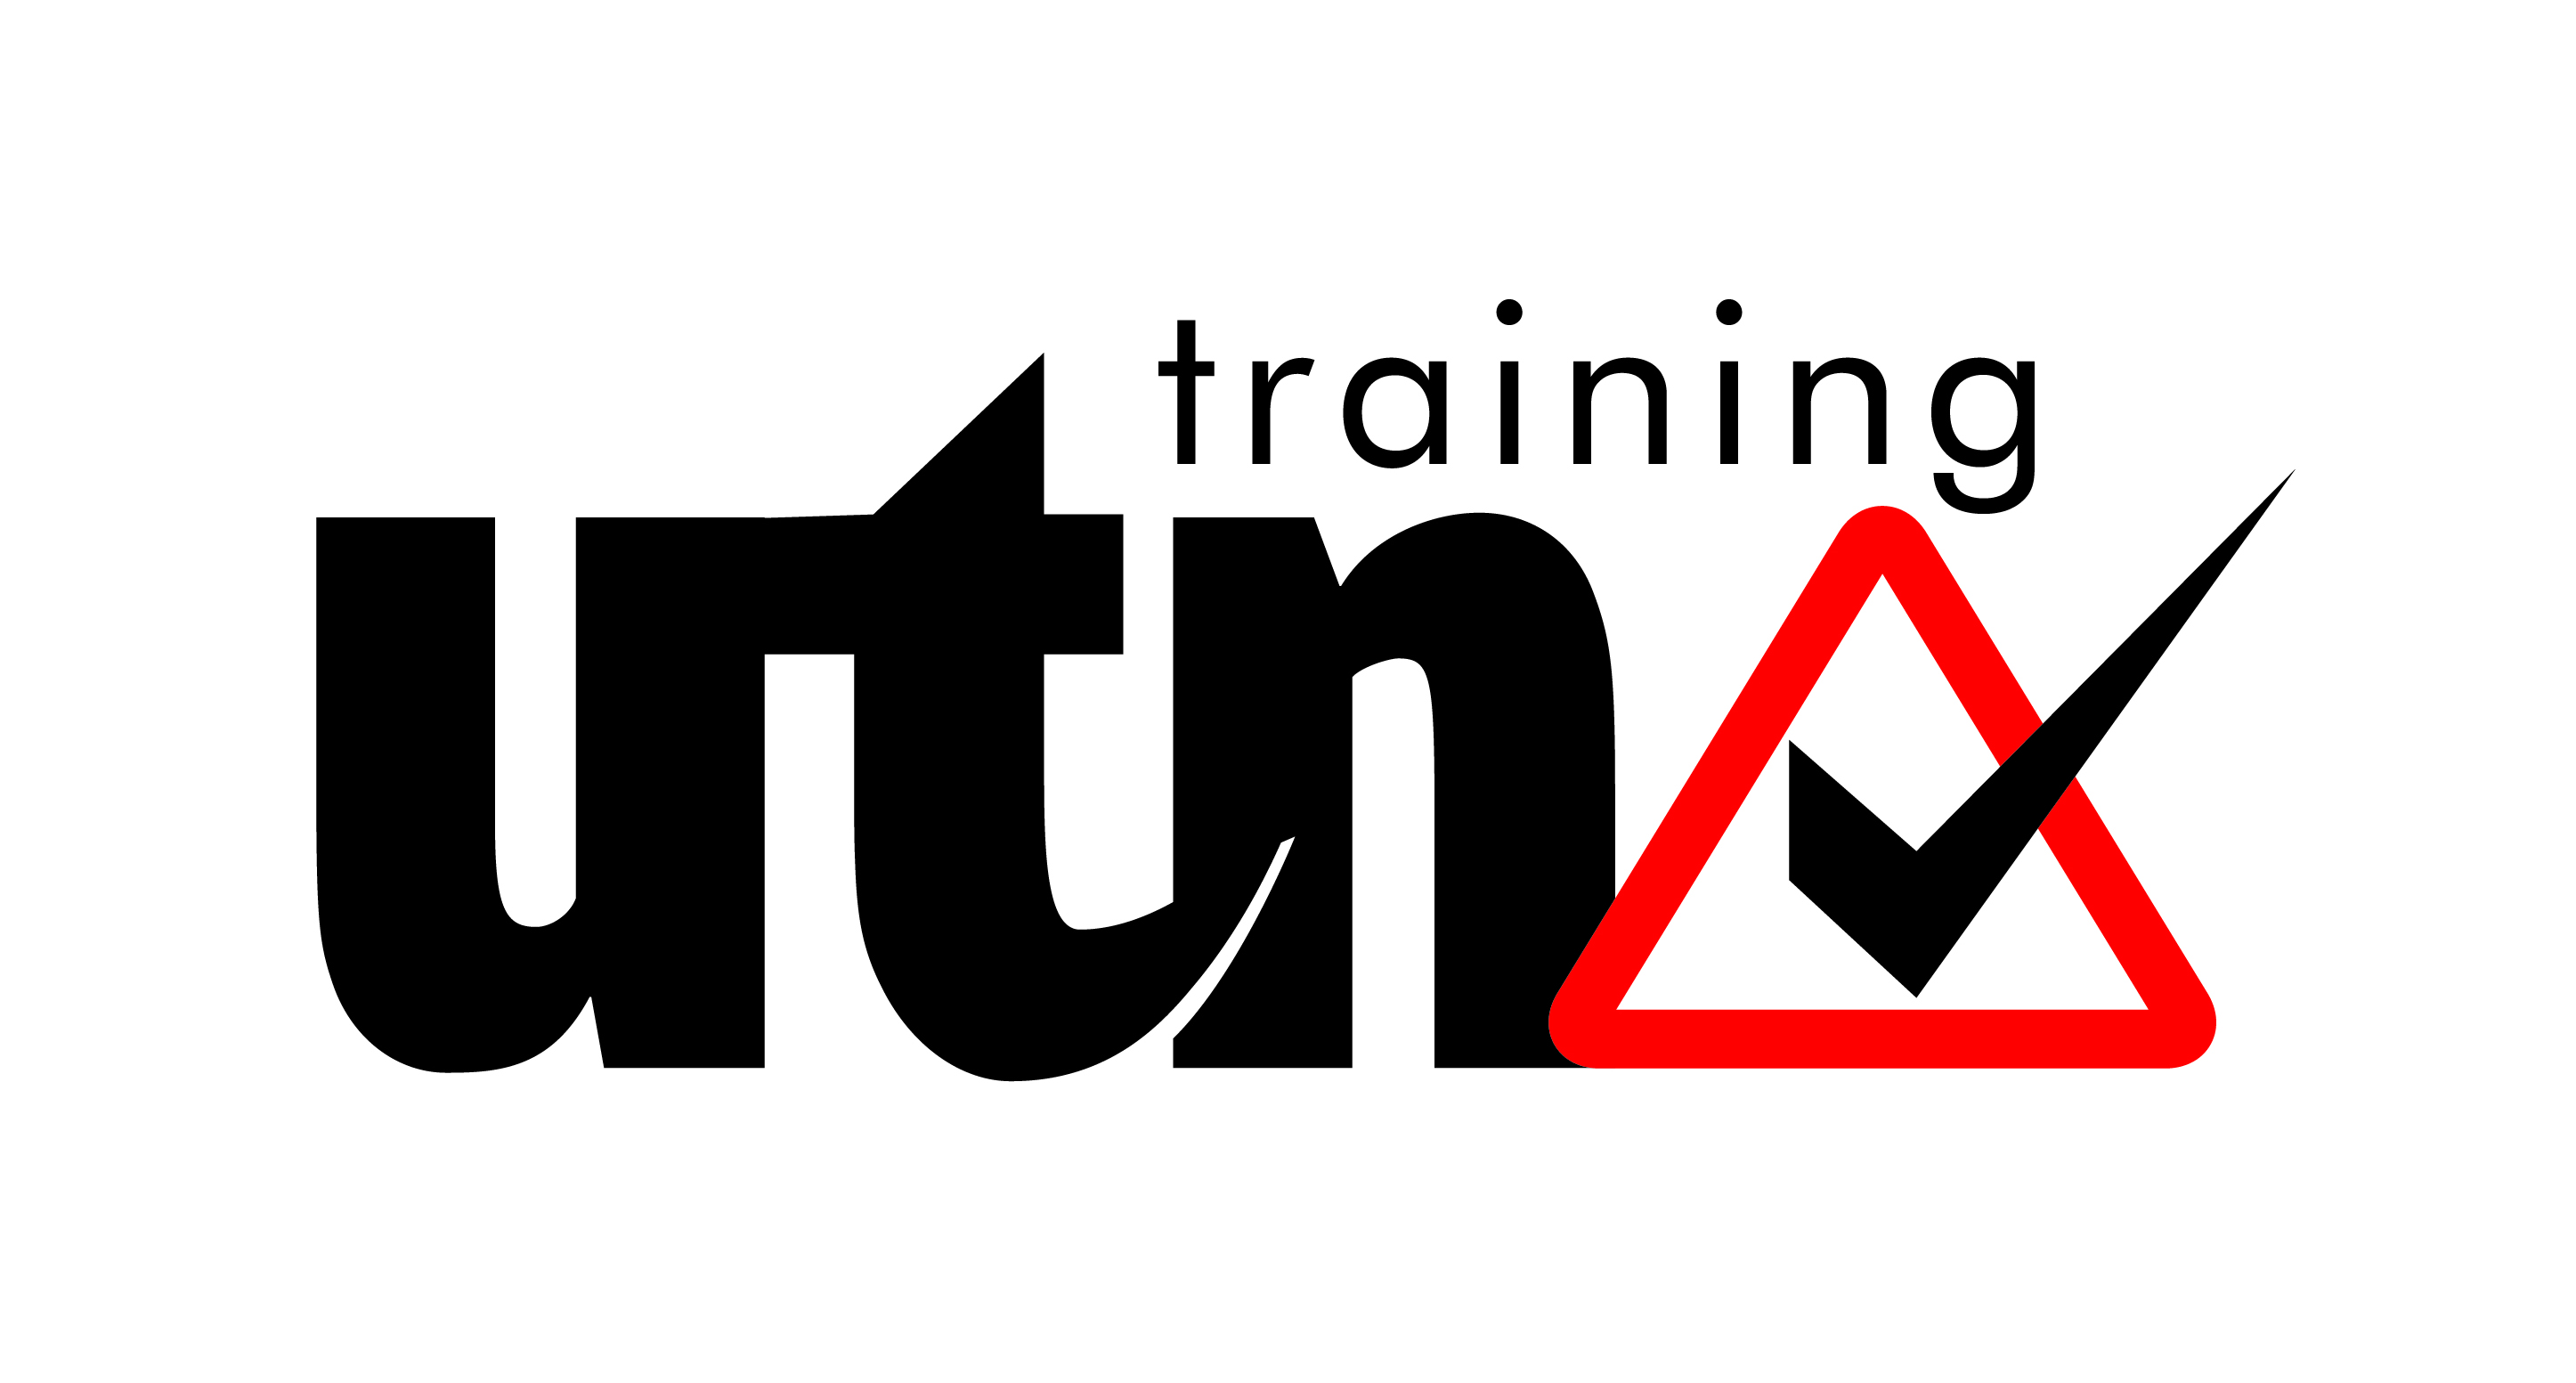 News update - Don't miss out on our great training offer